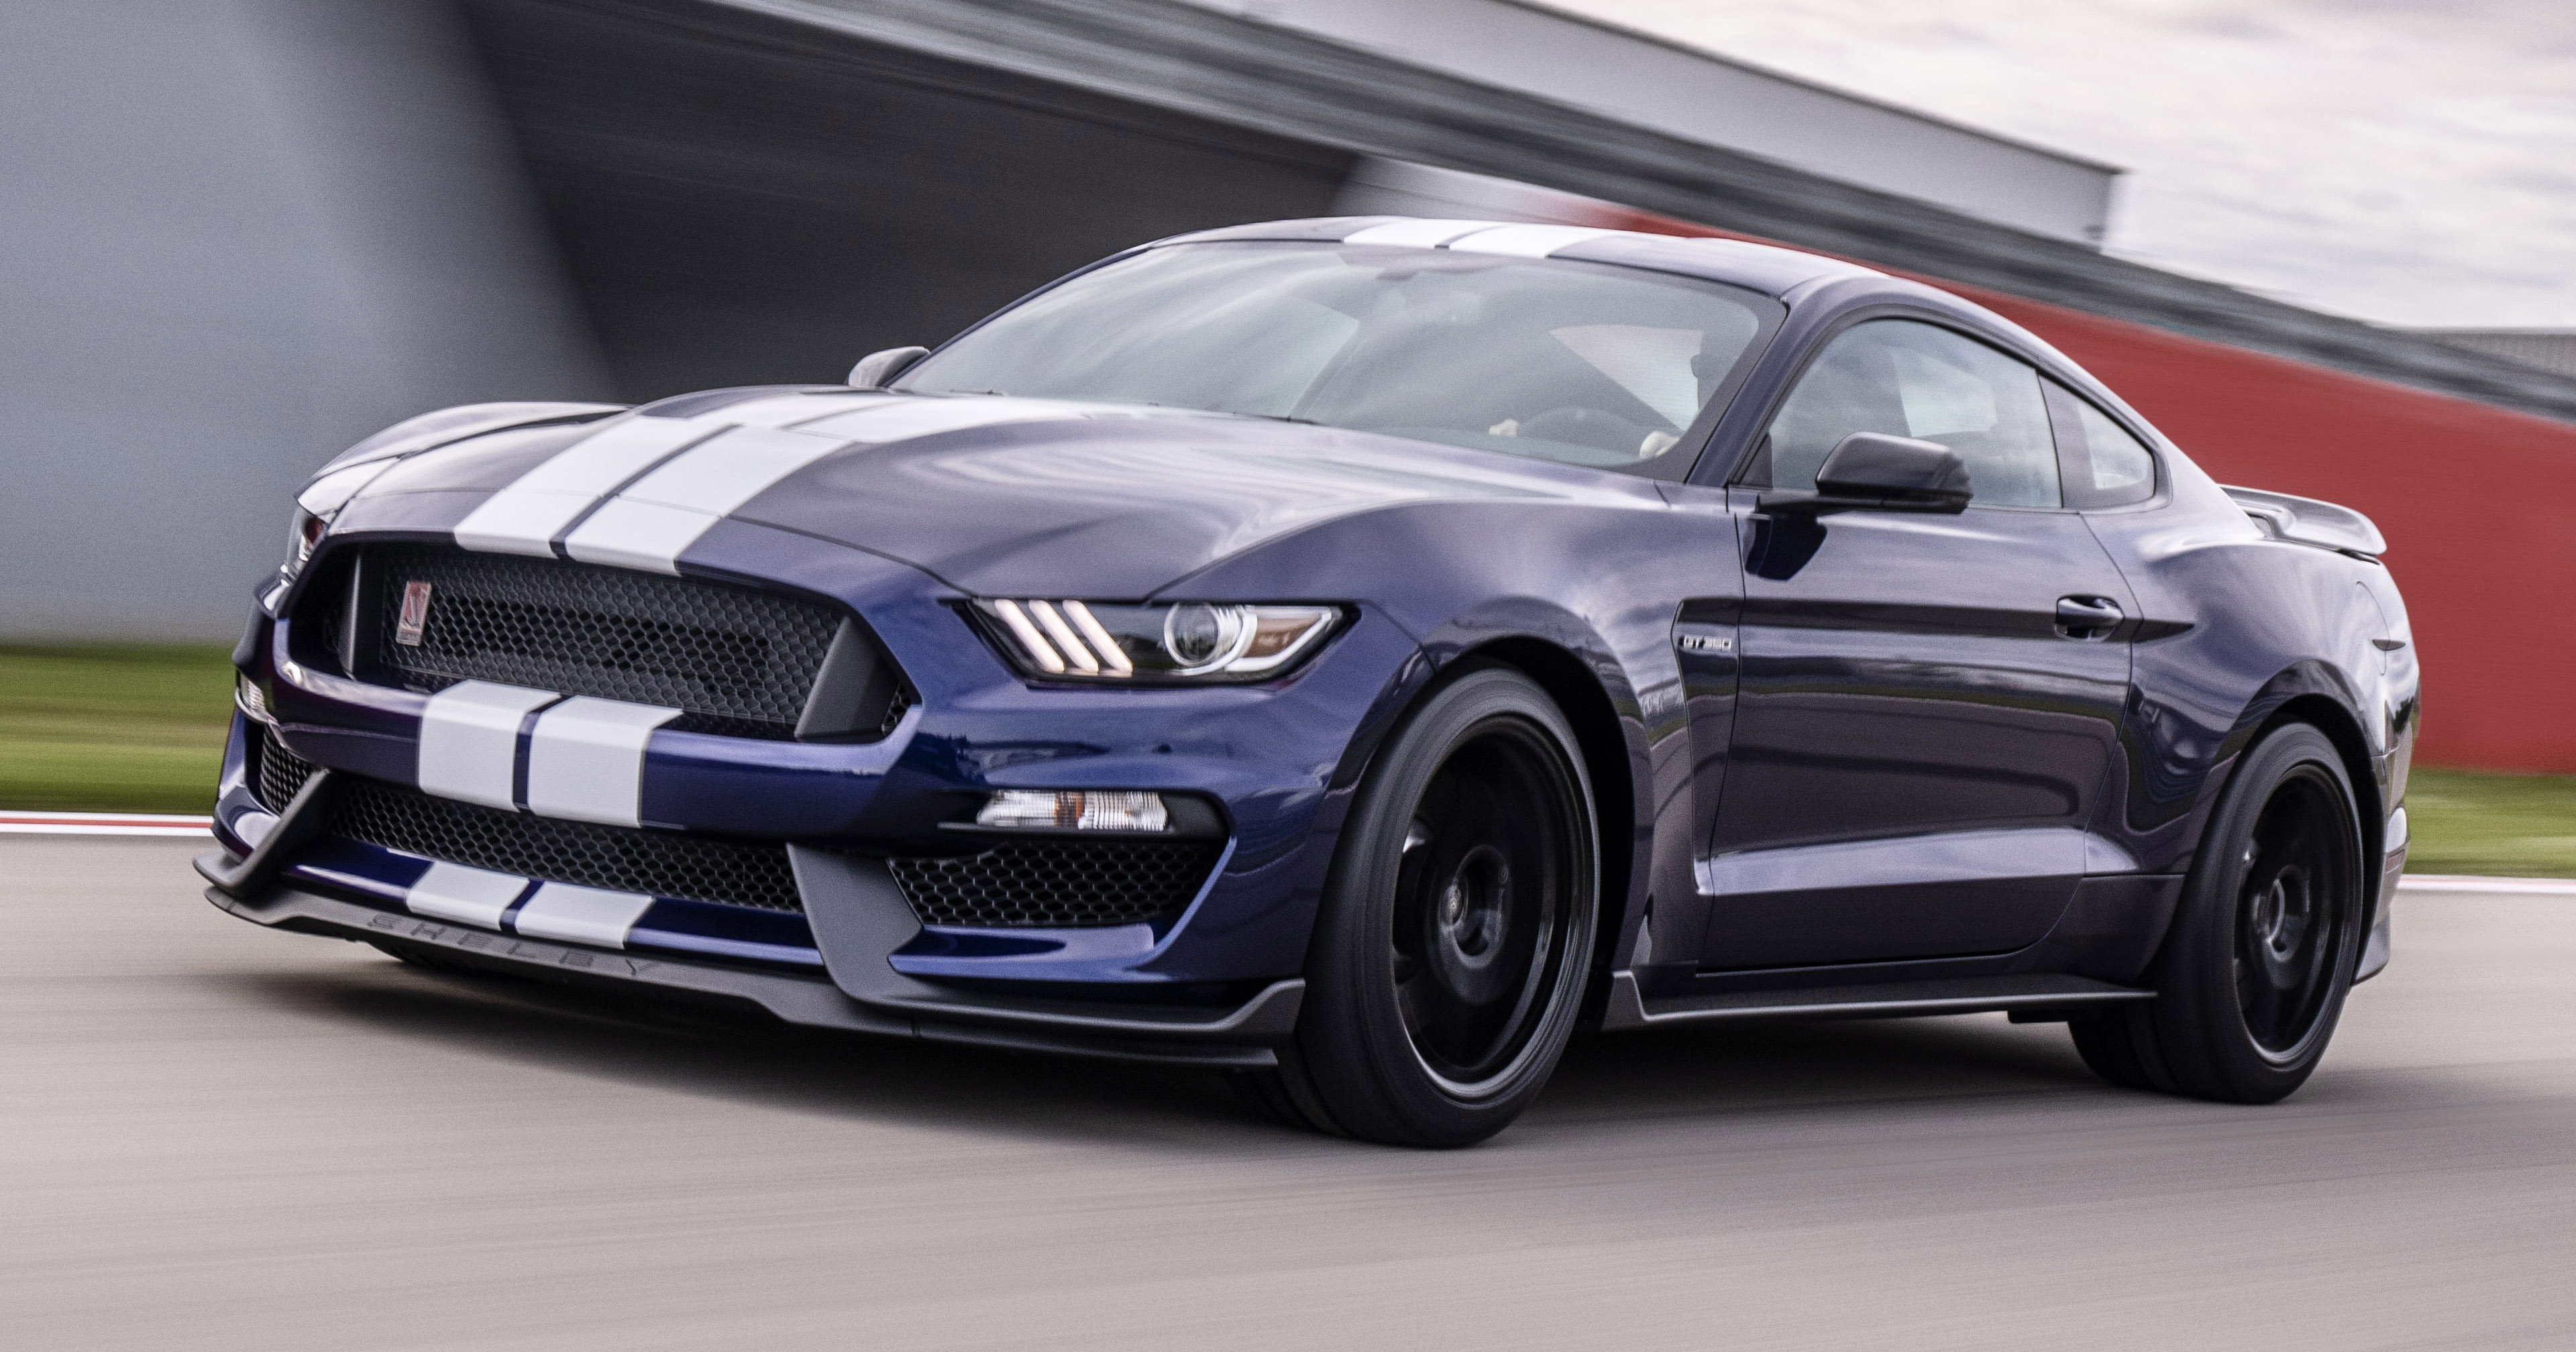 2019 Ford Mustang Shelby Gt350 Gains Improvements